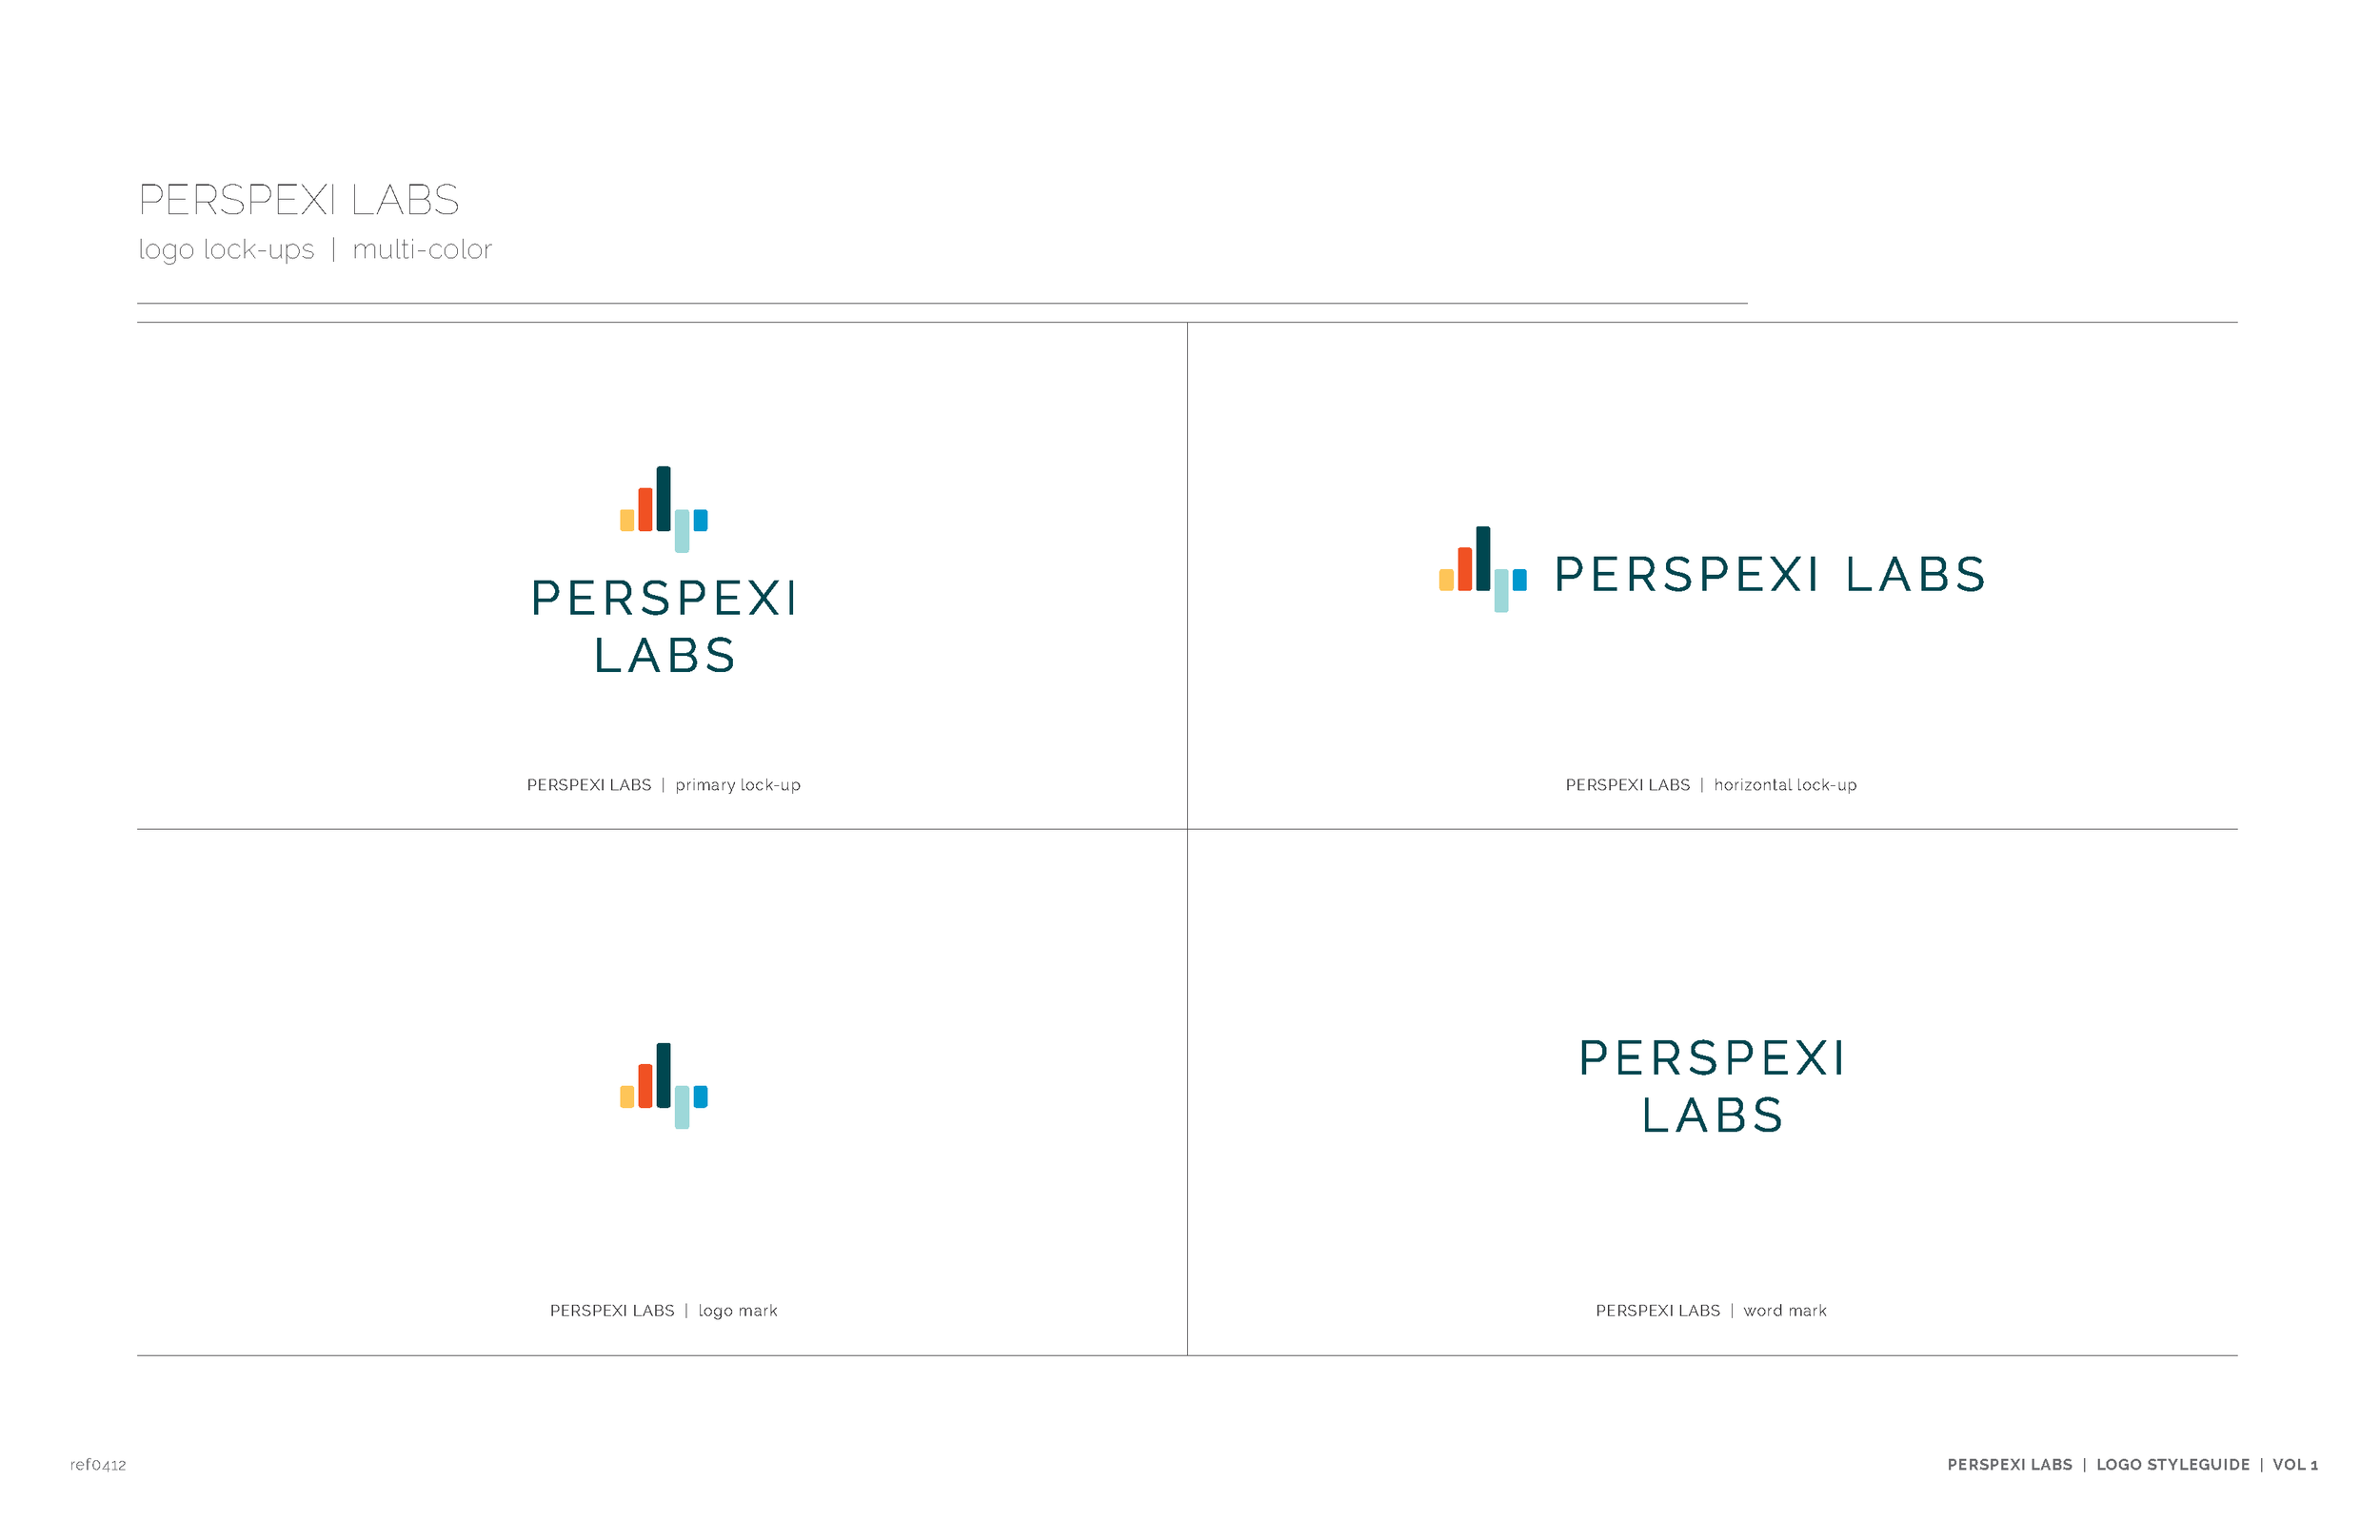 0412_StyleGuide_PerspexiLabs_Page_04.png